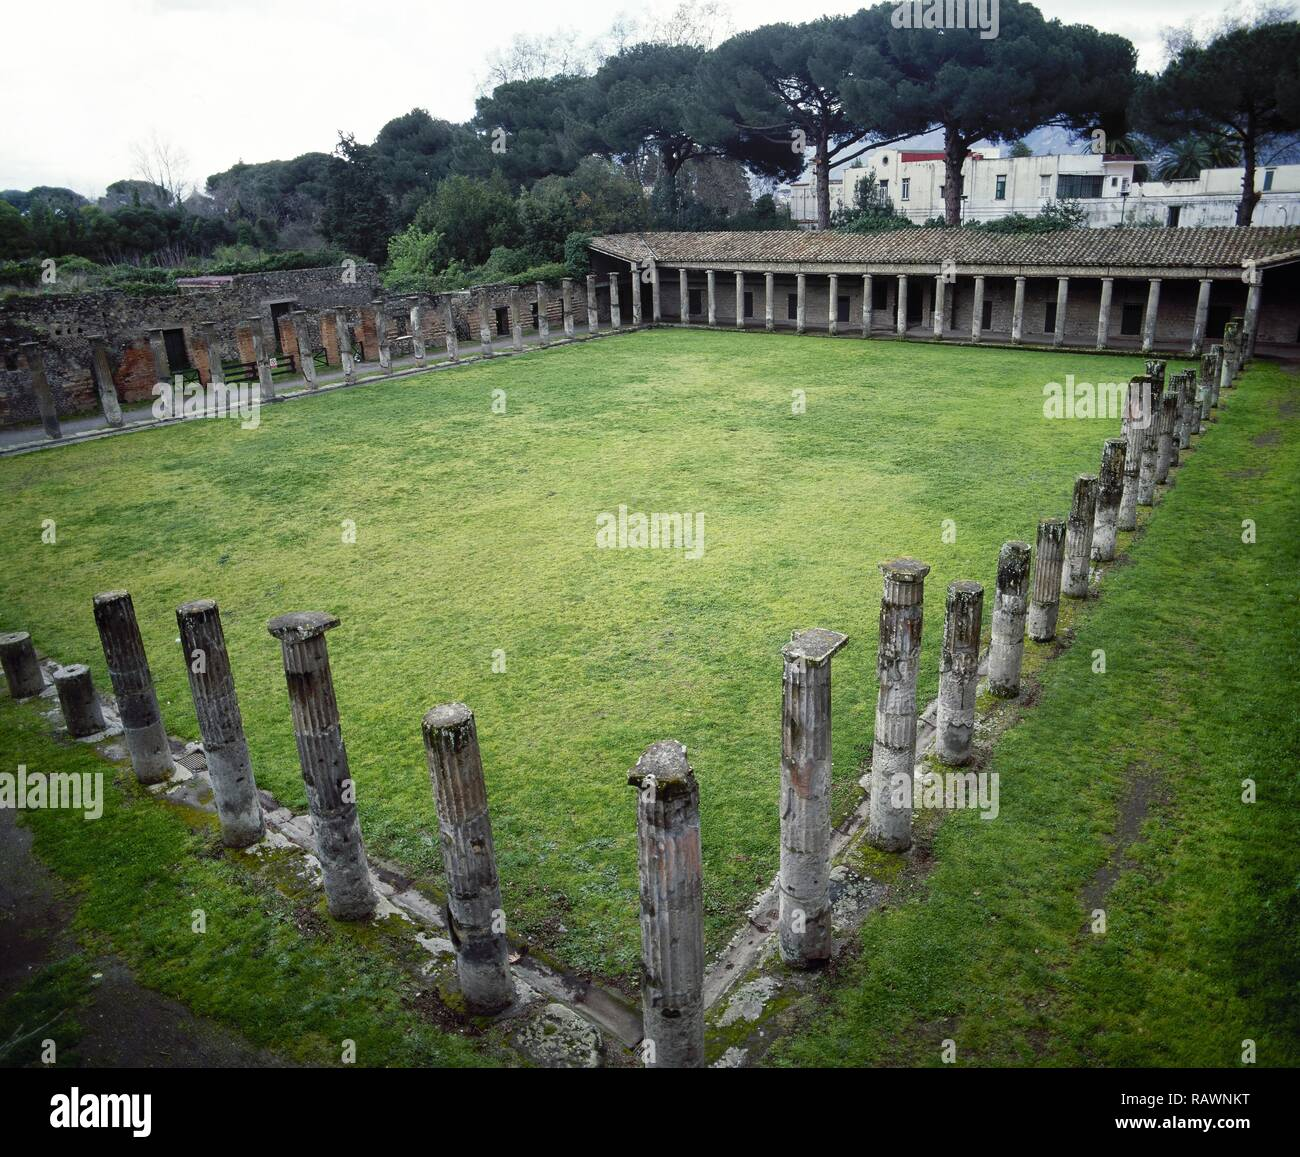 Italy. Pompeii. Quadriporticus of the theatres or Gladiators Barracks. It covers a large quadrangle surrounded by 74 Doric tuff columns used as a foyer. On this area spectators could stop during the intervals of the theatre shows. After the earthquake of 62 AD the building changed its function and became as barracks for gladiators. Theatre Area. Campania. - Stock Image